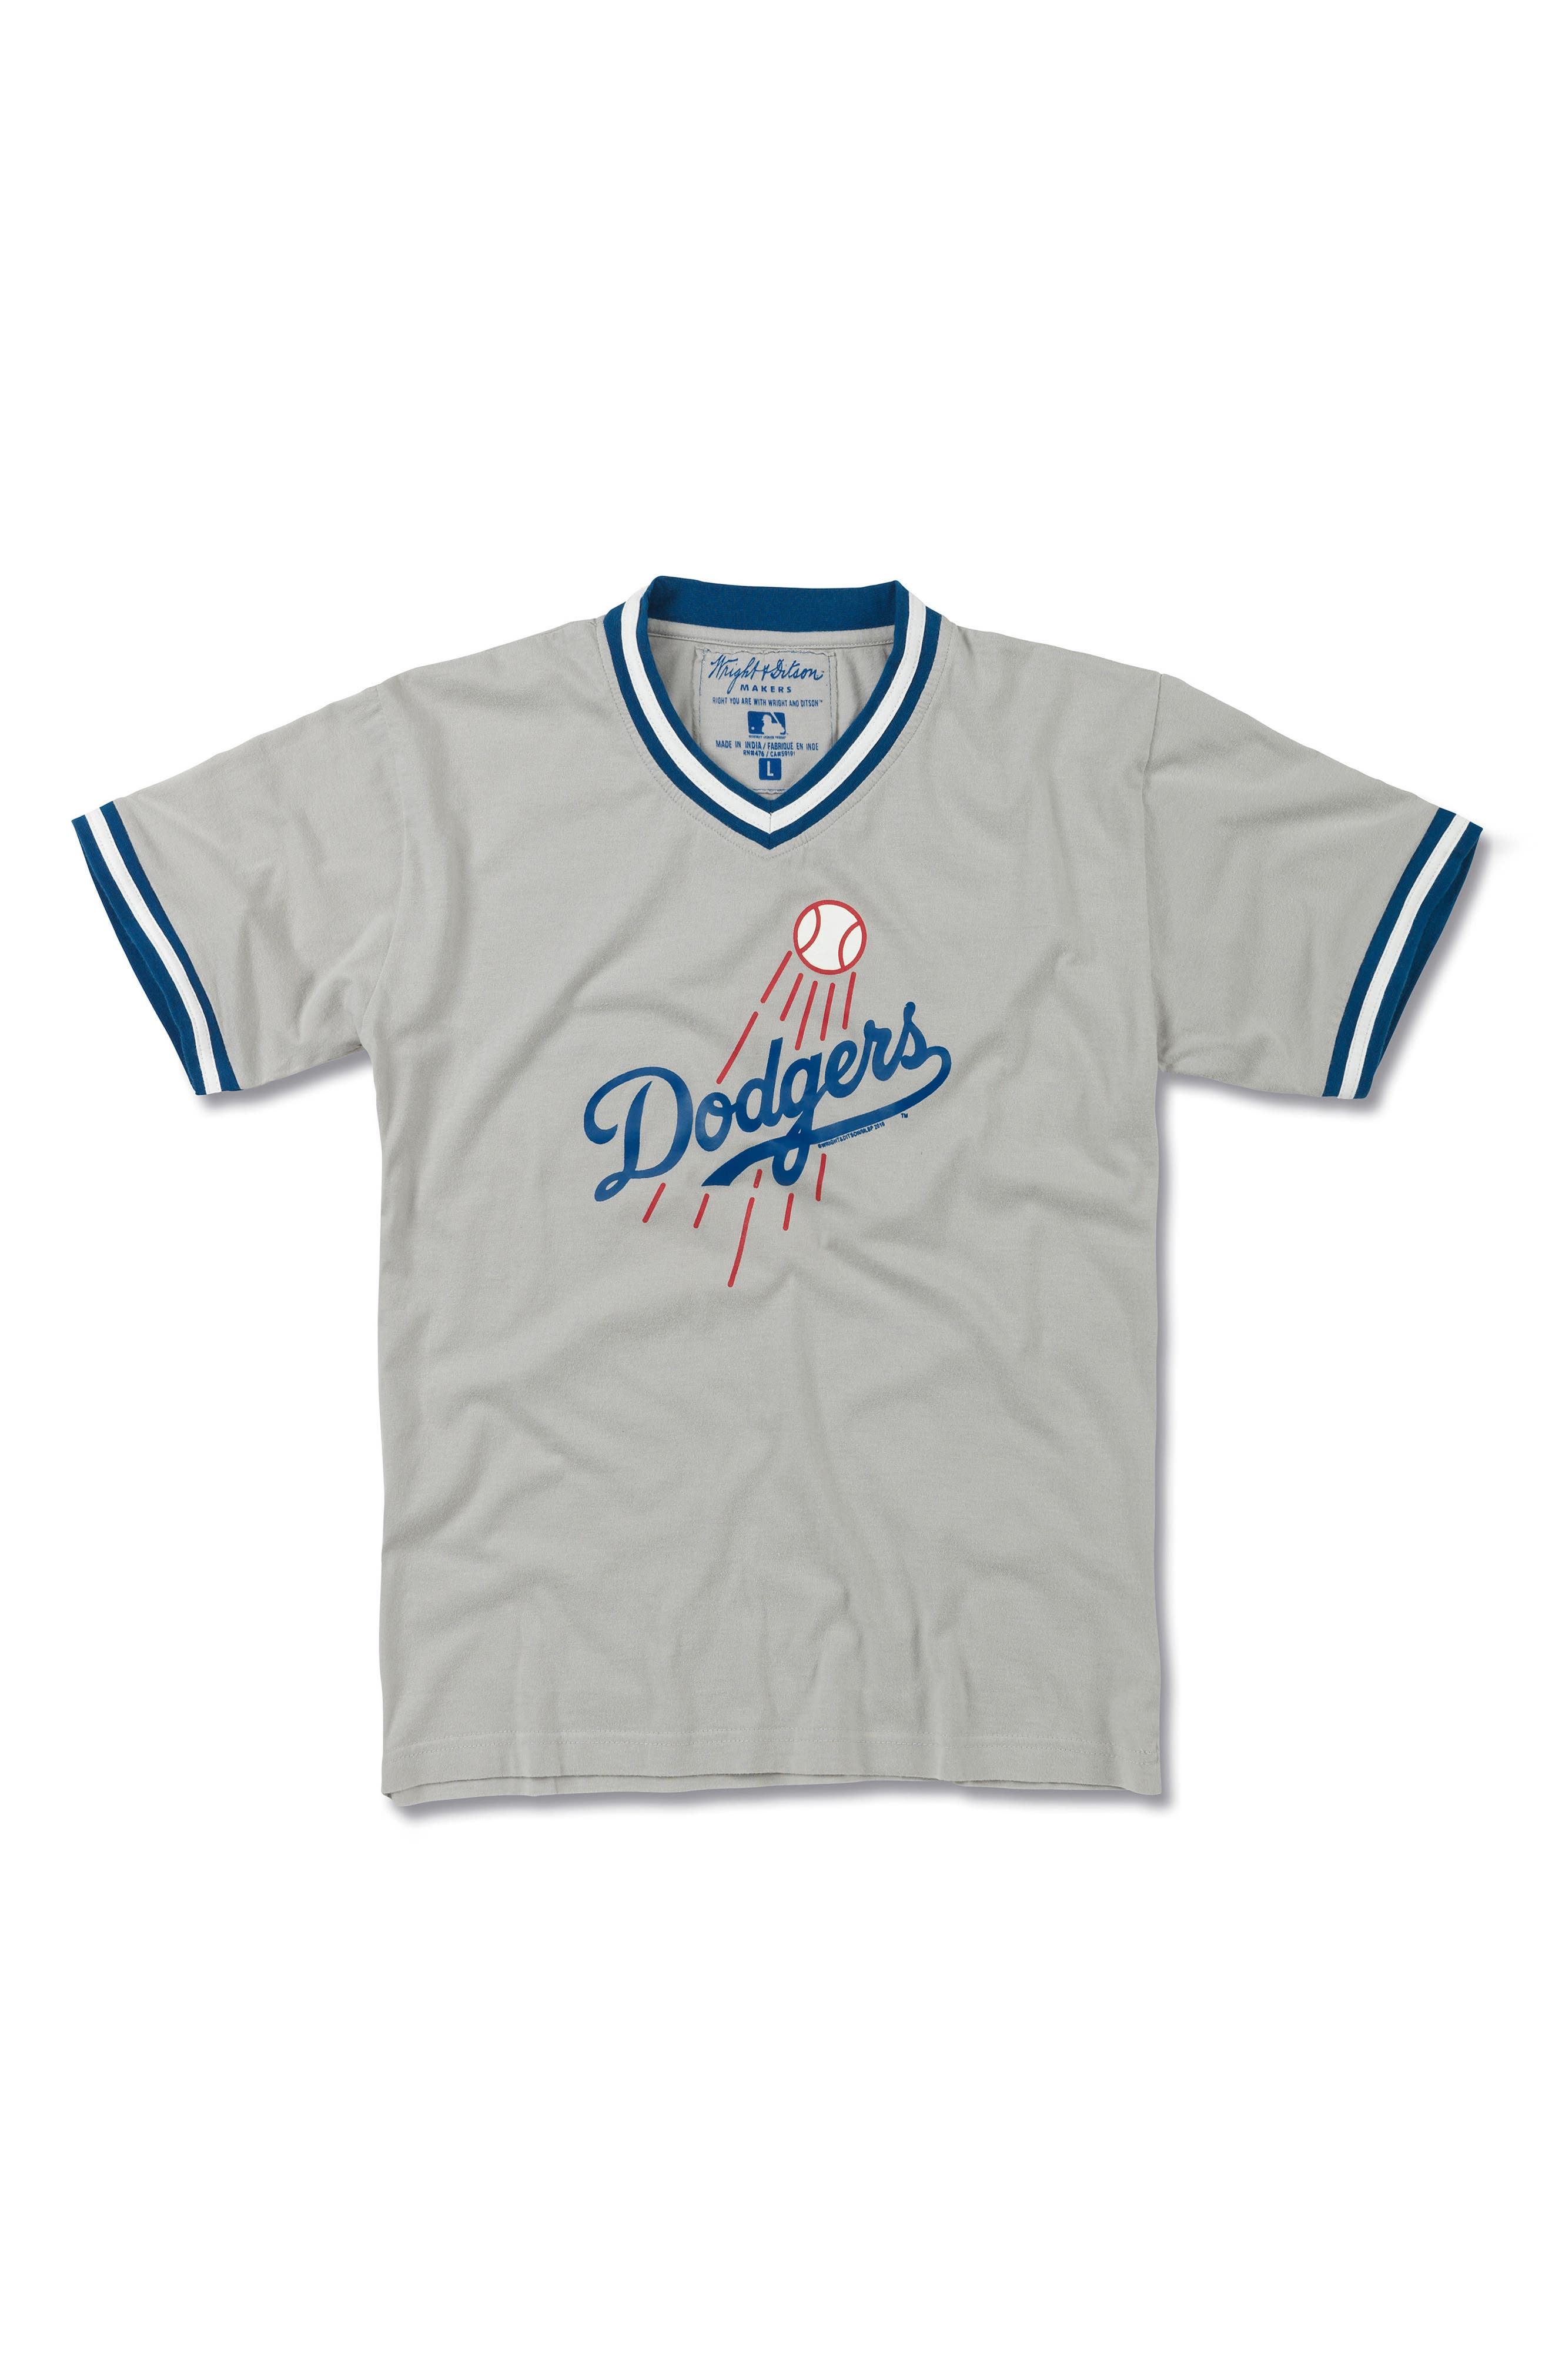 Main Image - Wright & Ditson Los Angeles Dodgers T-Shirt (Little Boys & Big Boys)